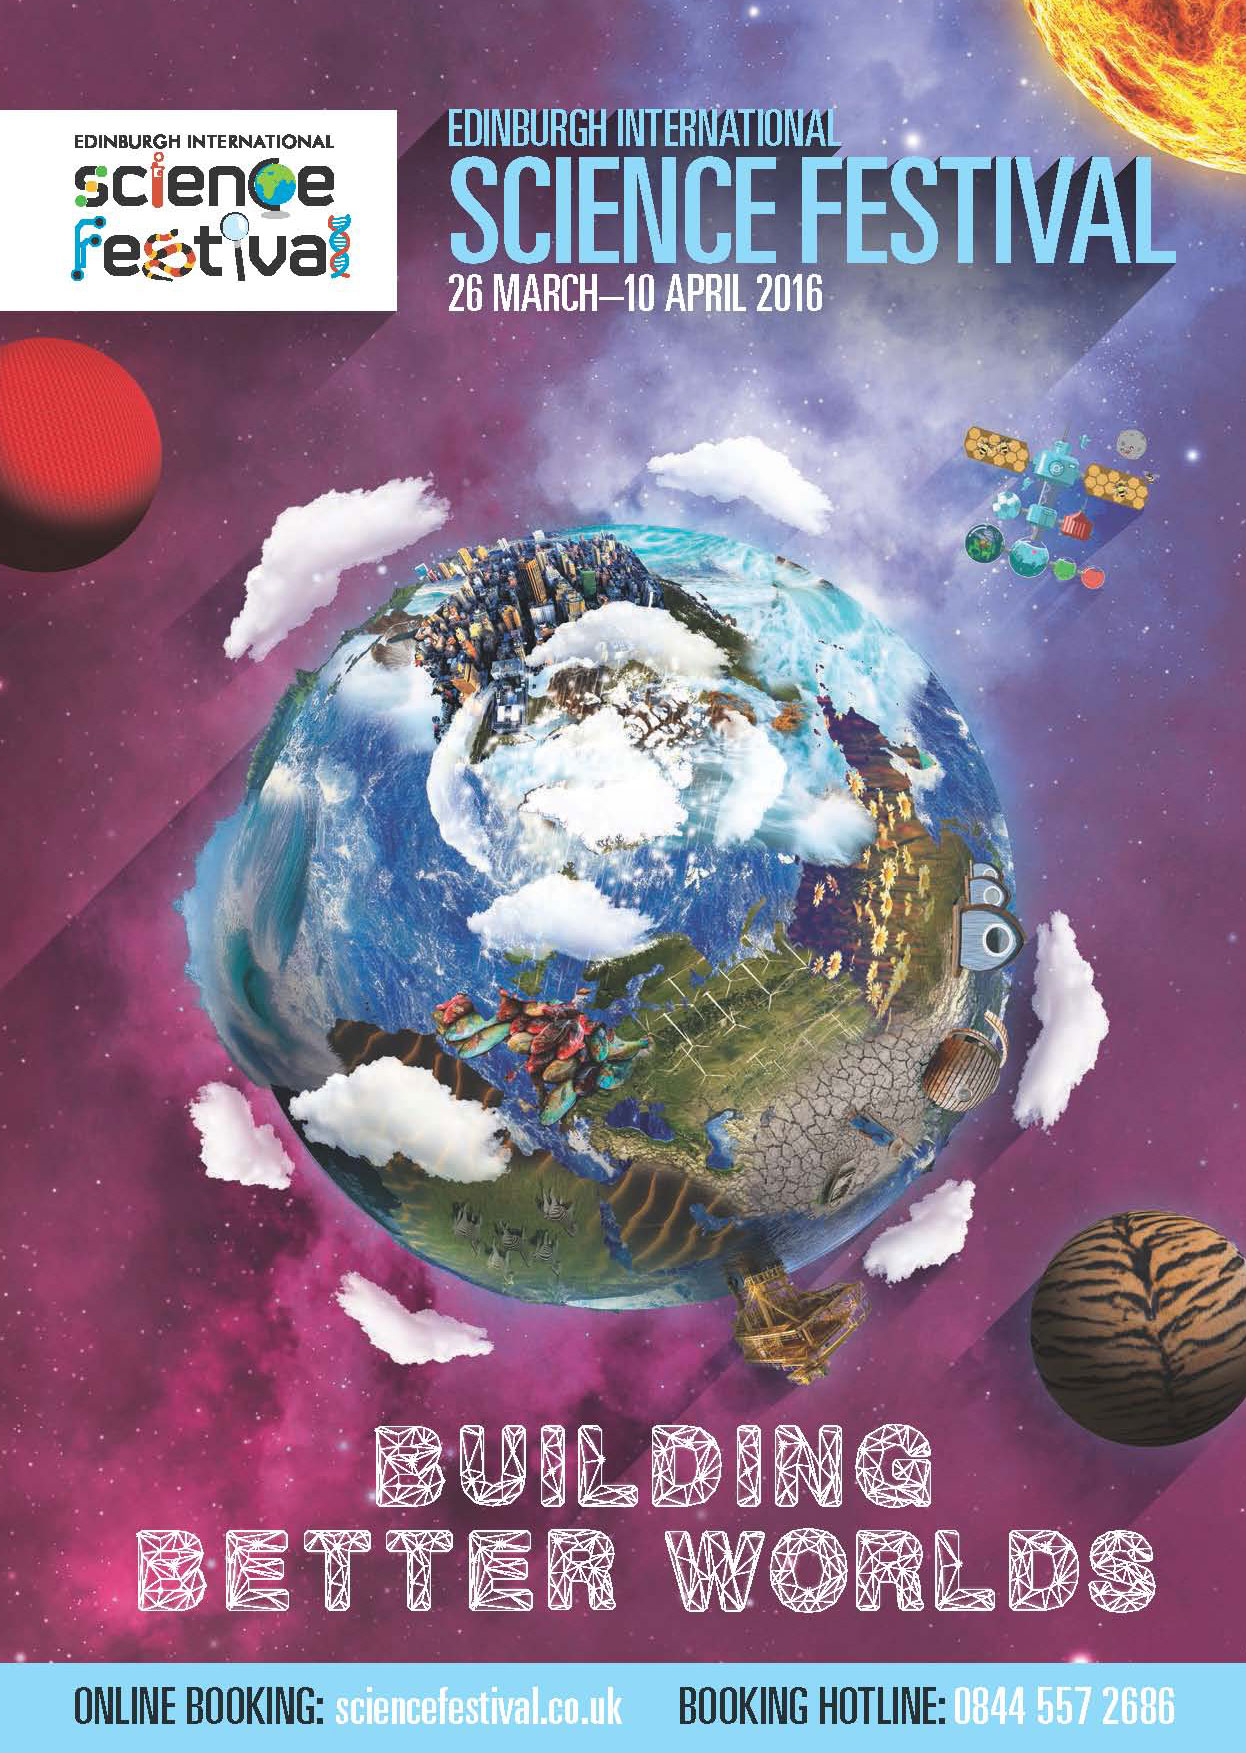 2016 Edinburgh International Science Festival brochure cover